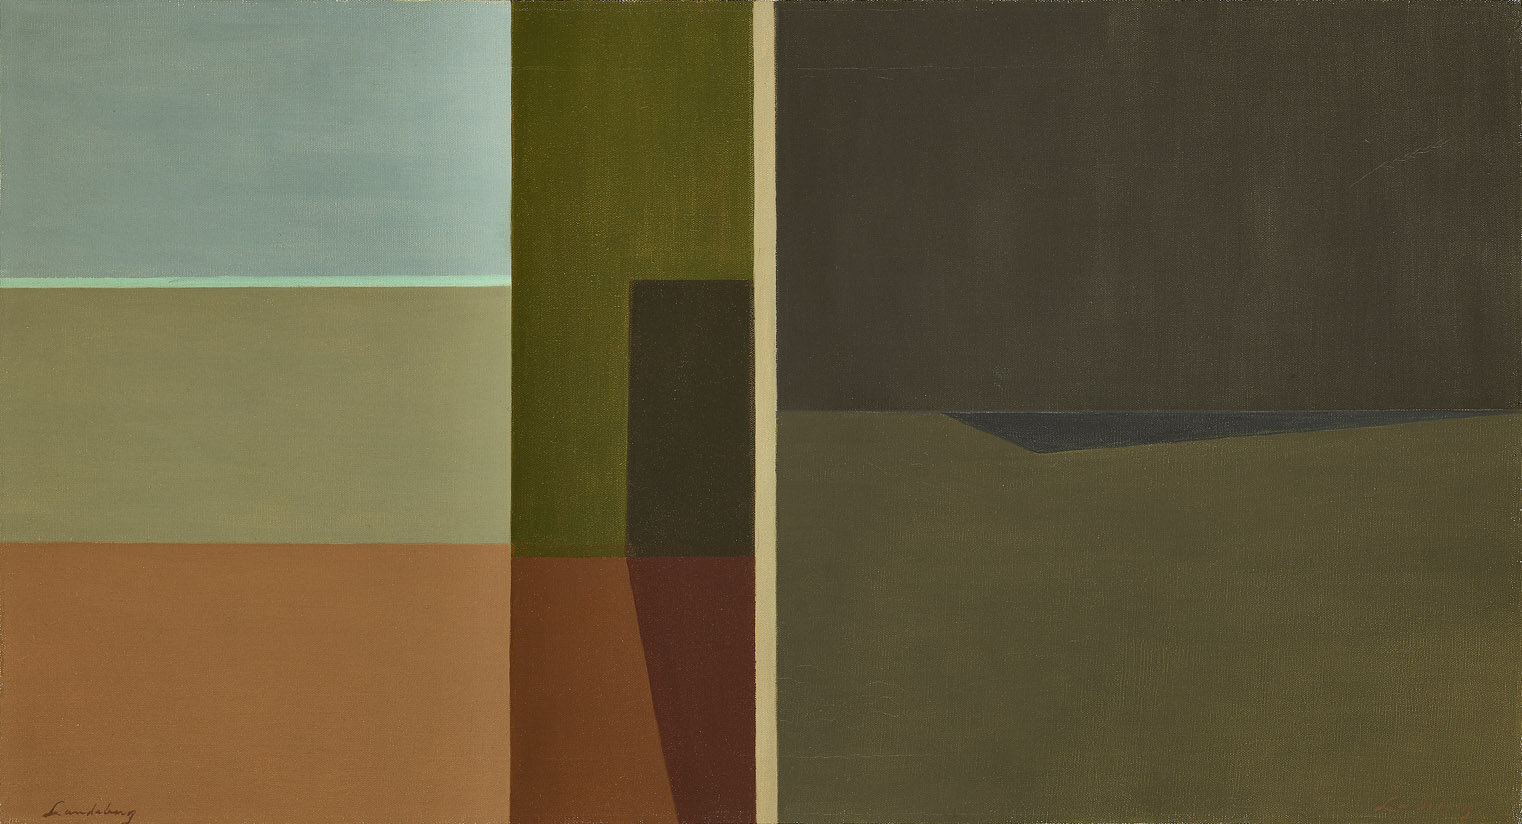 Ambiguity , 1959  oil on canvas 20 x 36 inches; 50.8 x 91.4 centimeters